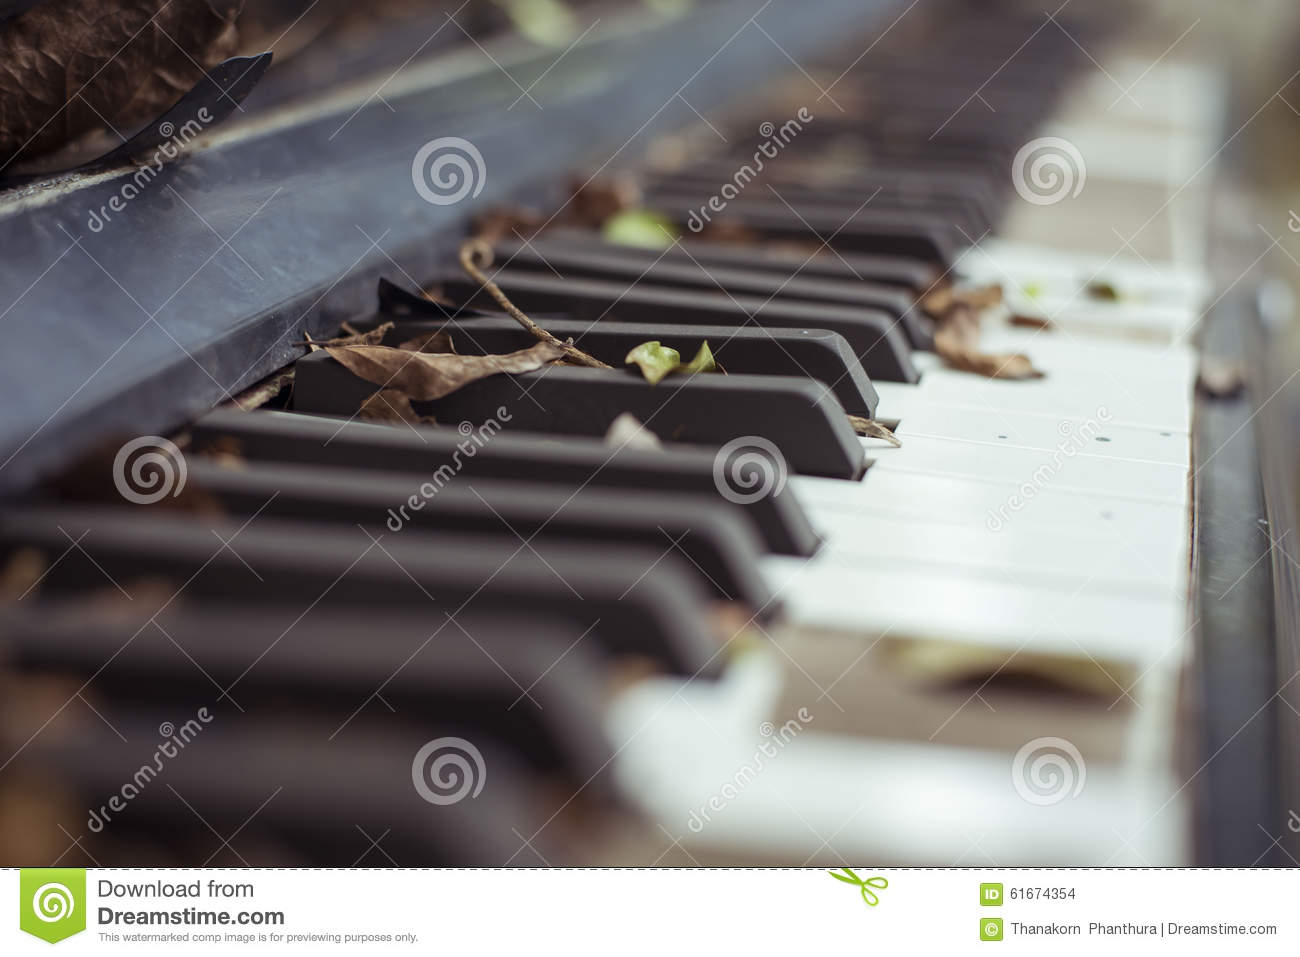 Old piano stock photo  Image of instrument, orchestra - 61674354